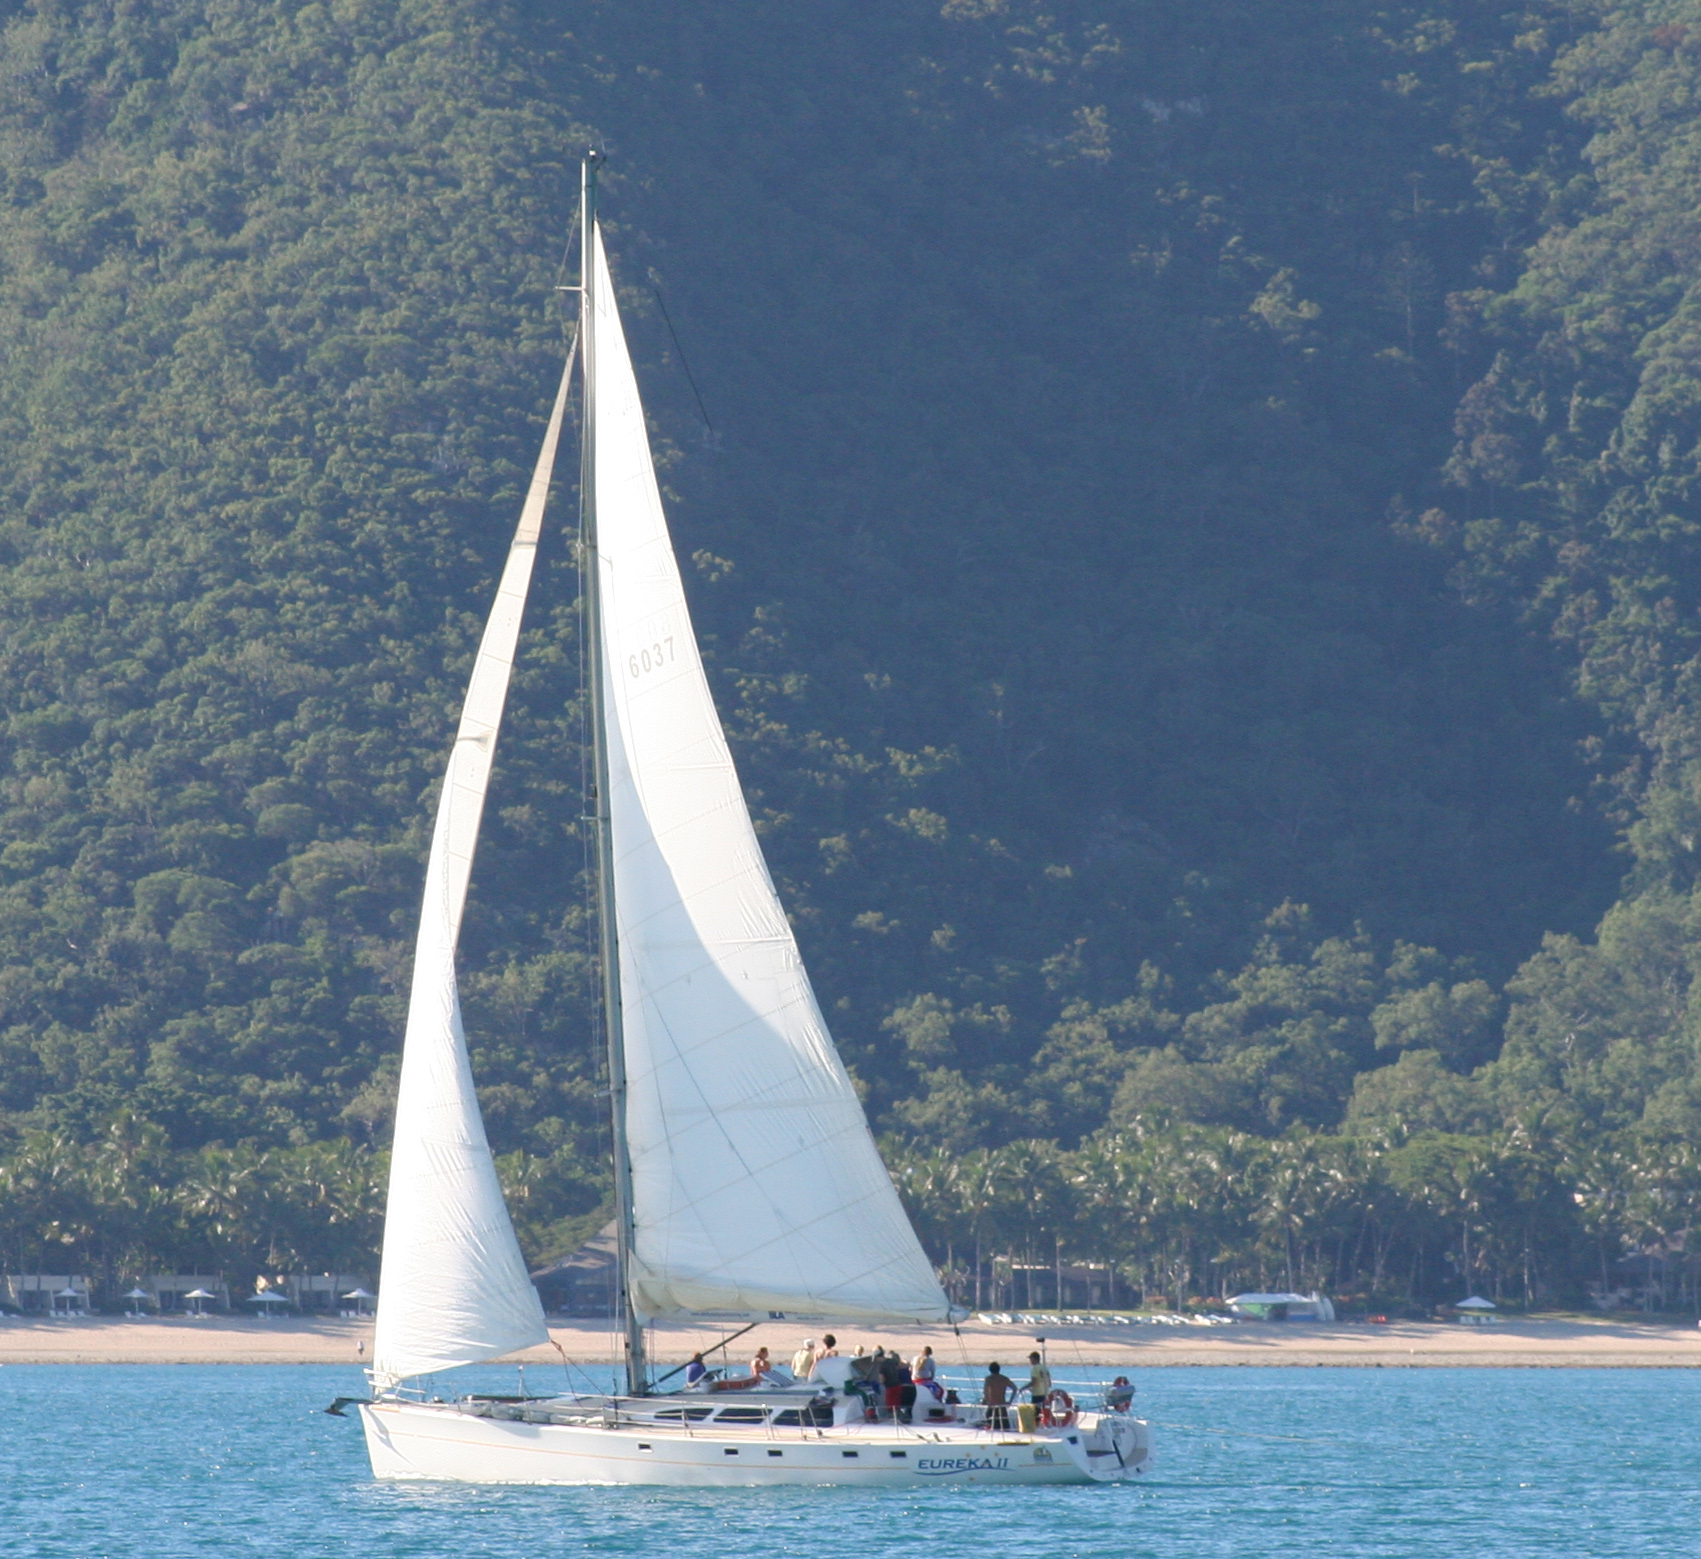 Eureke II 2 days 1 night Overnight Tour - Whitsunday Islands - Sailing